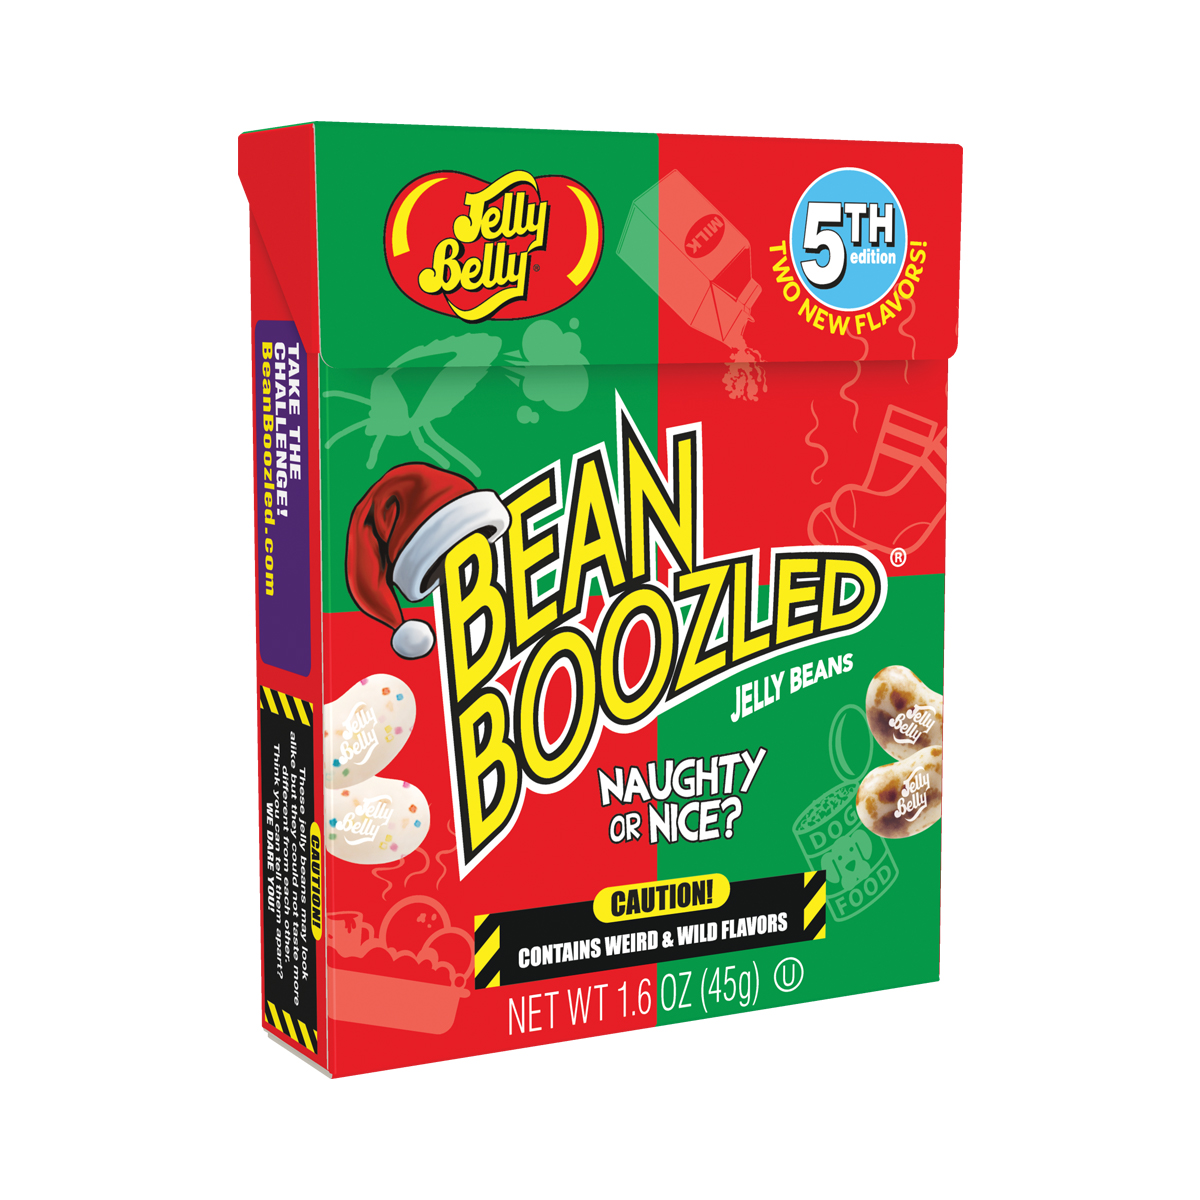 NEW JELLY BEANS JELLY BEANS PINKALICIOUS